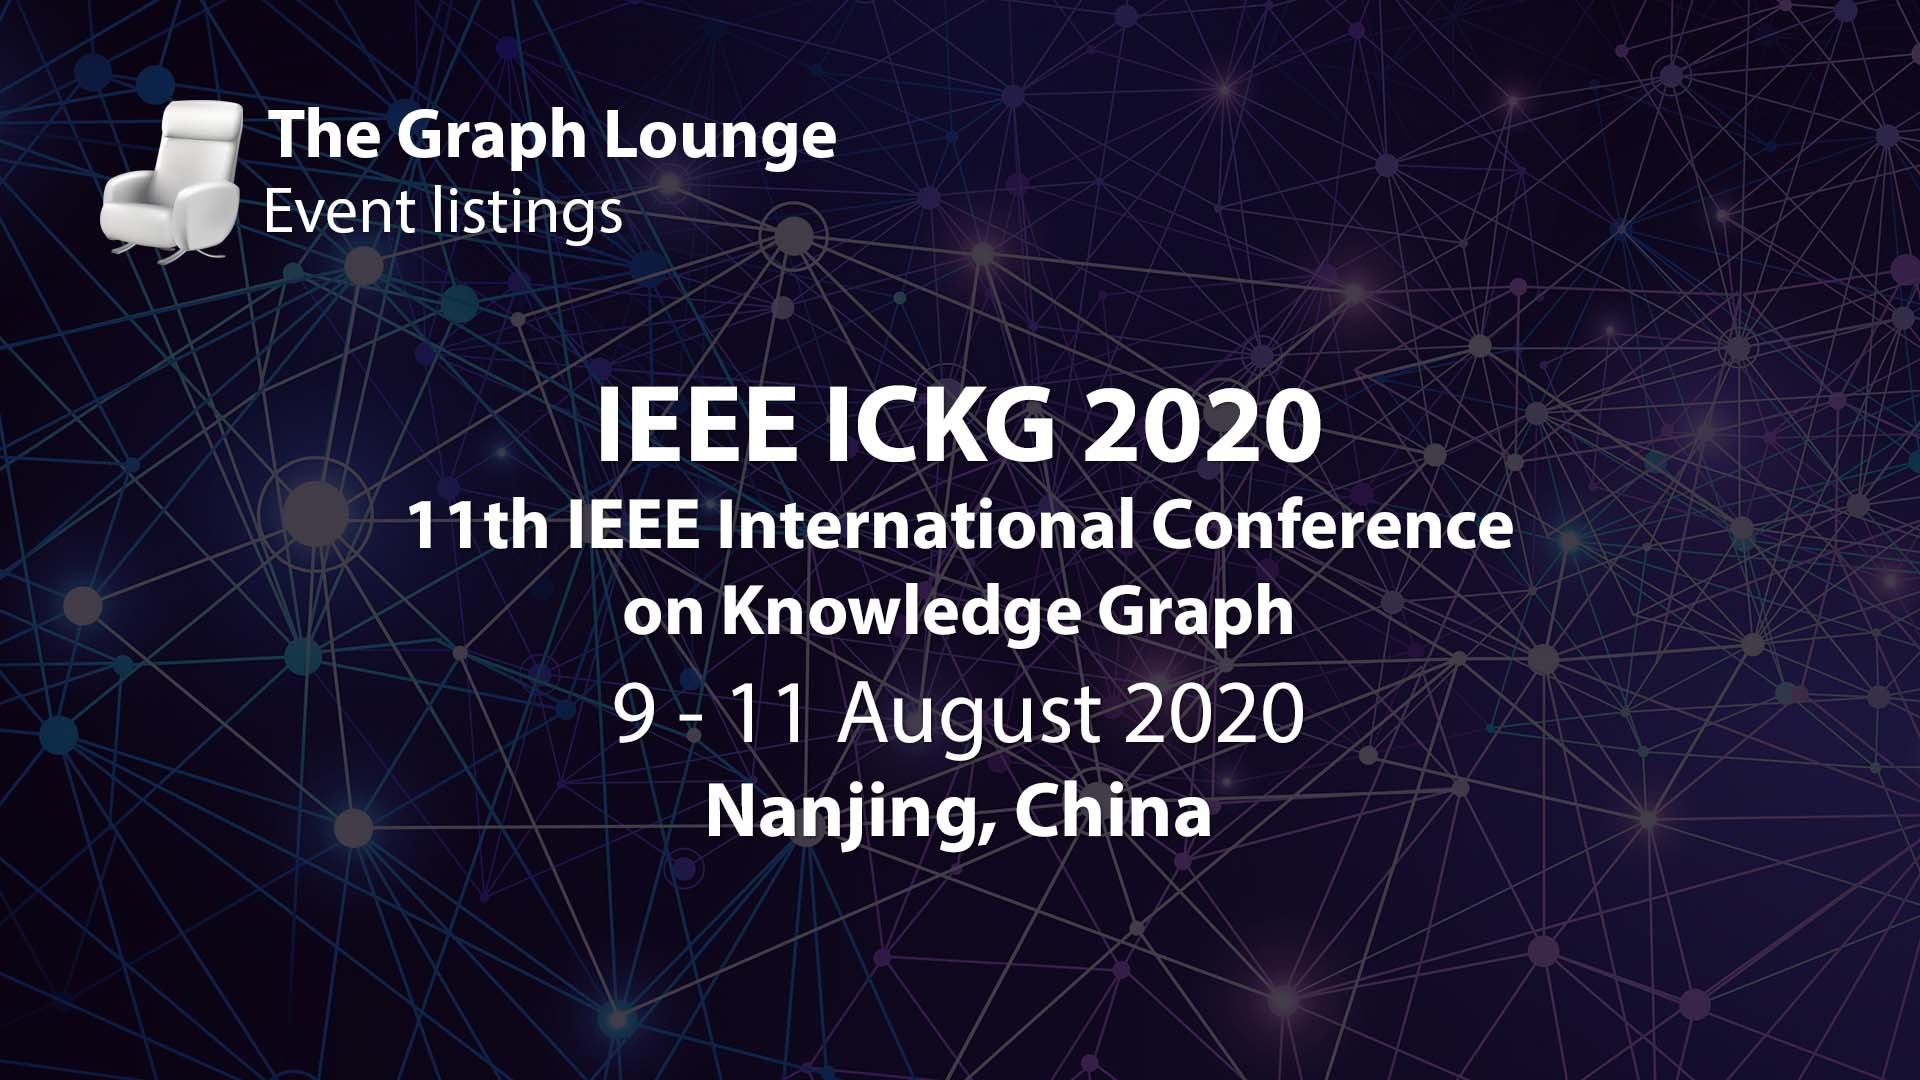 IEEE ICKG 2020 (11th IEEE International Conference on Knowledge Graph)